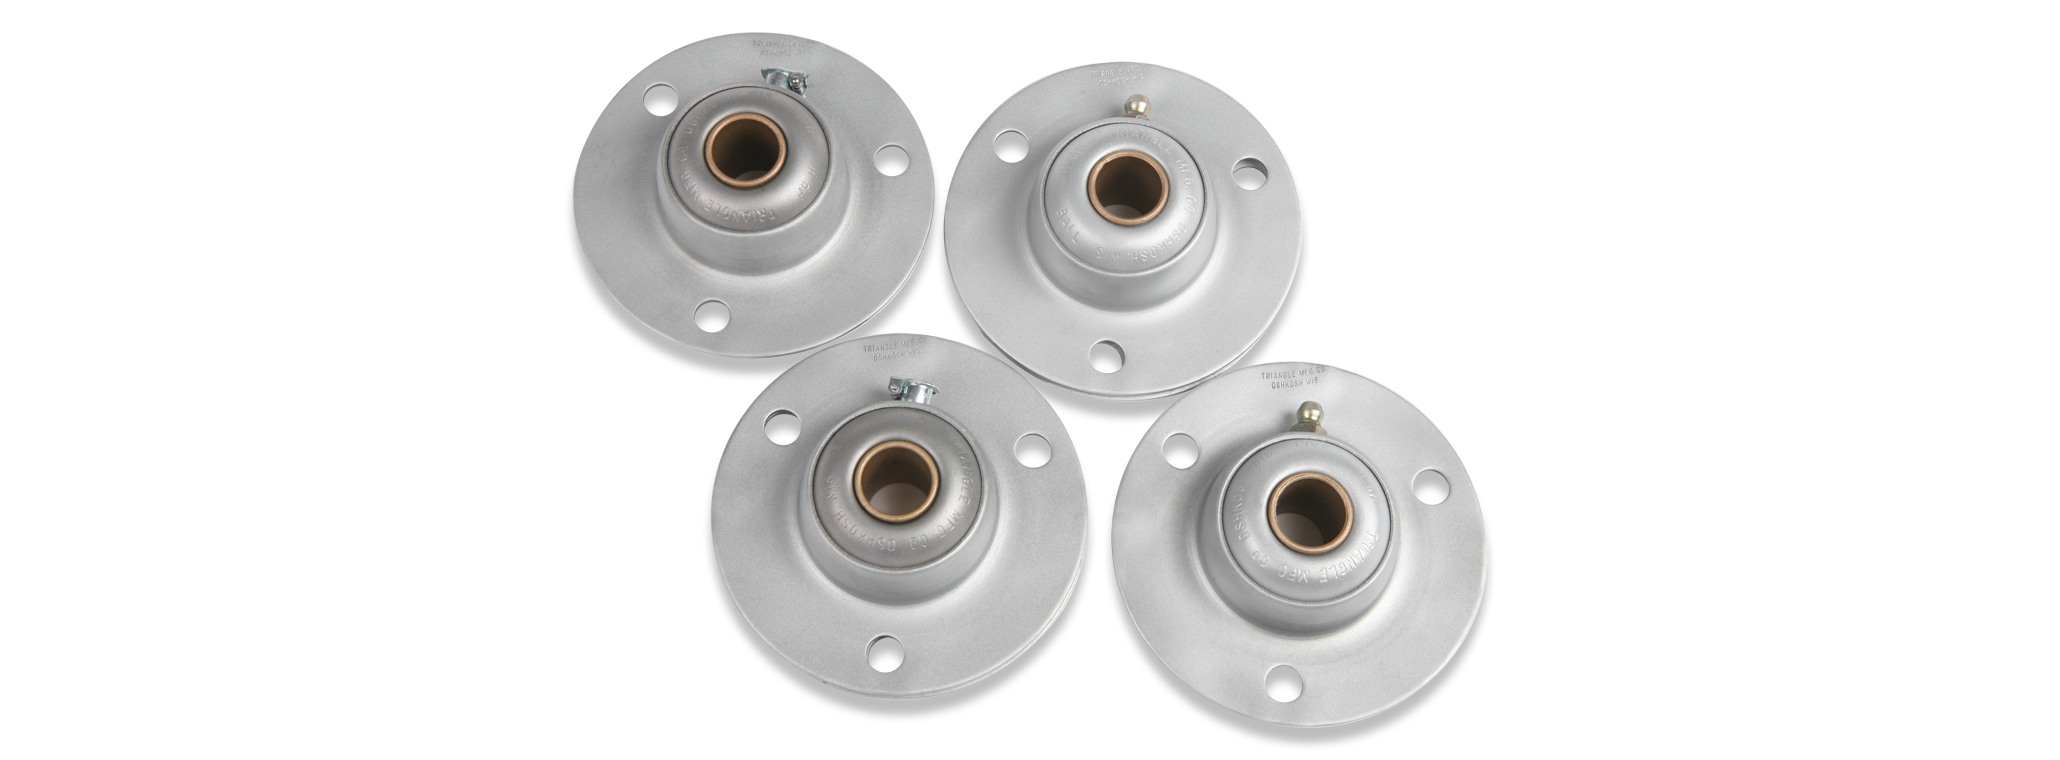 Triangle 3 Bolt Flange Bearing Types